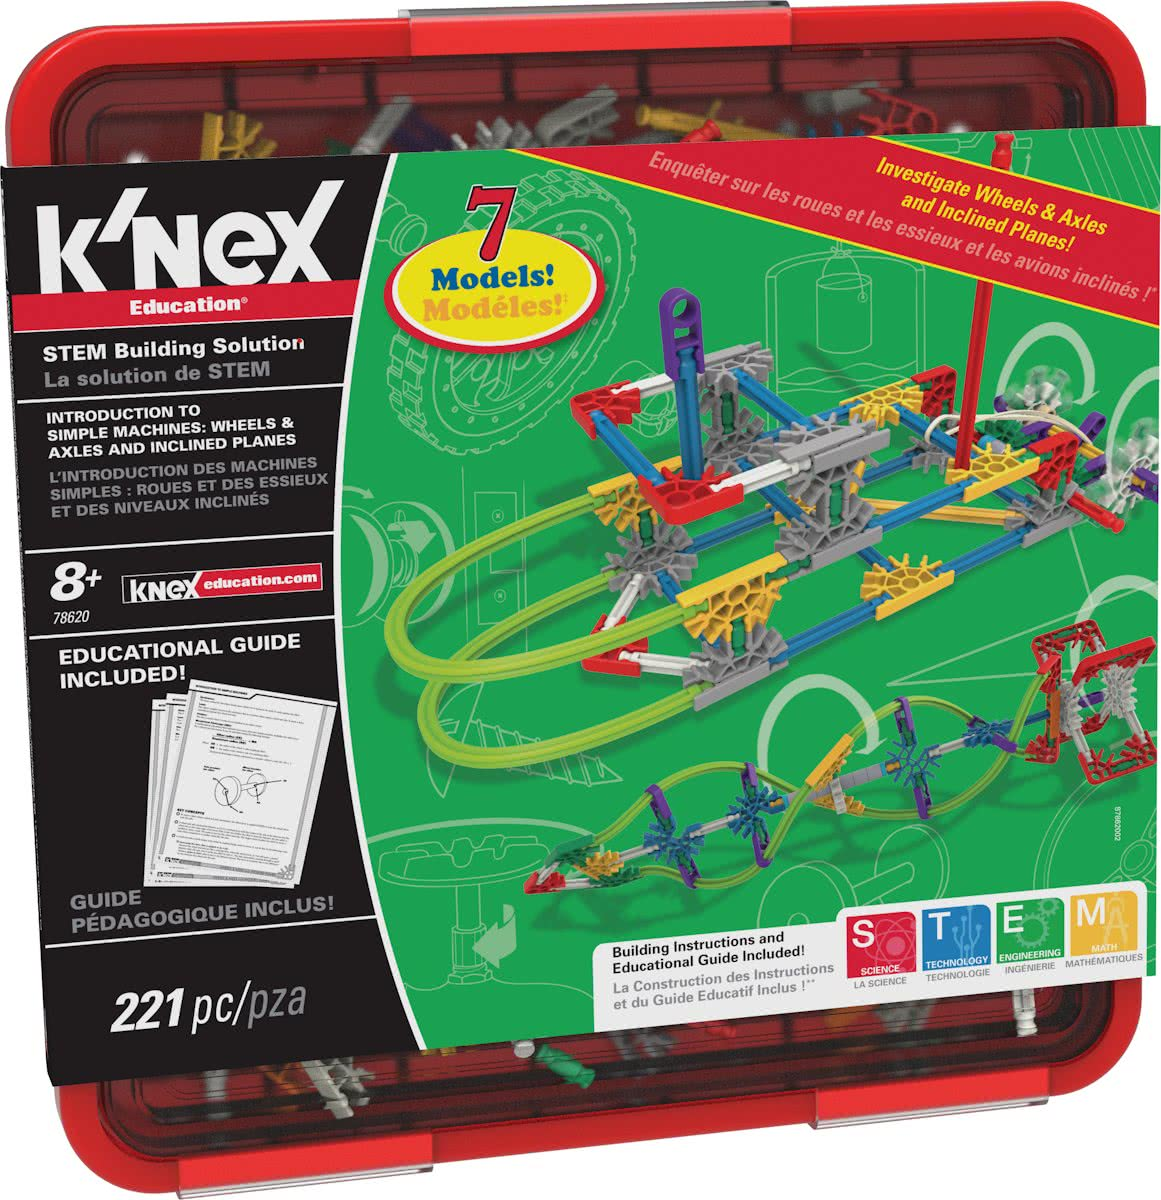 KNEX Education Intro to Simple Machines: Wheels, Axles & Inclined Planes - Bouwset